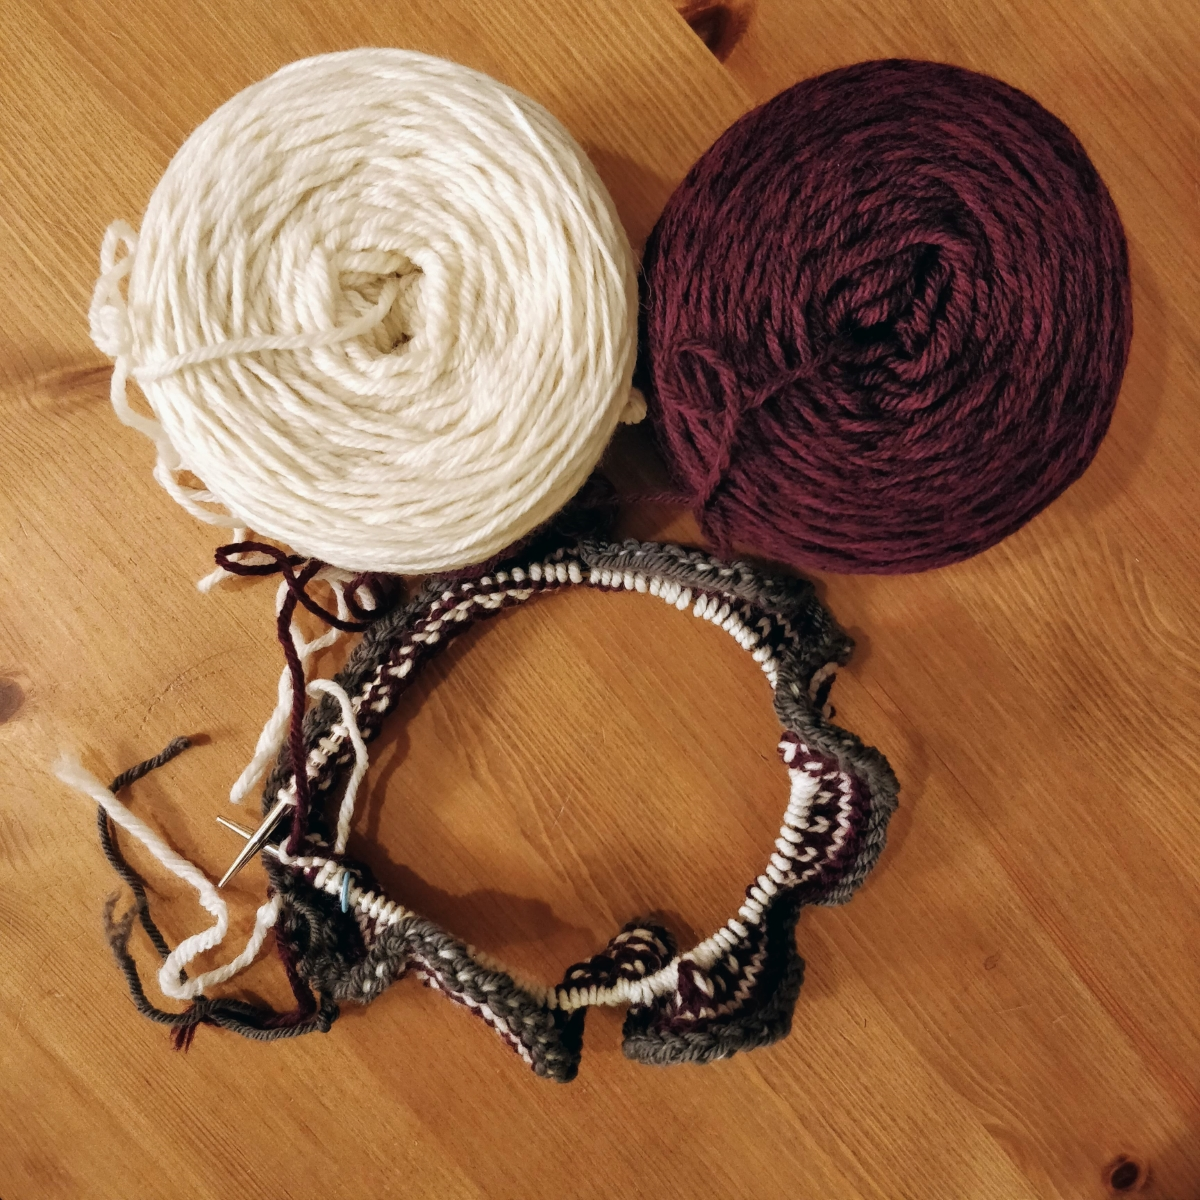 Burgundy and white balls of yarn, with a circular needle that has the beginnings of a new hat.